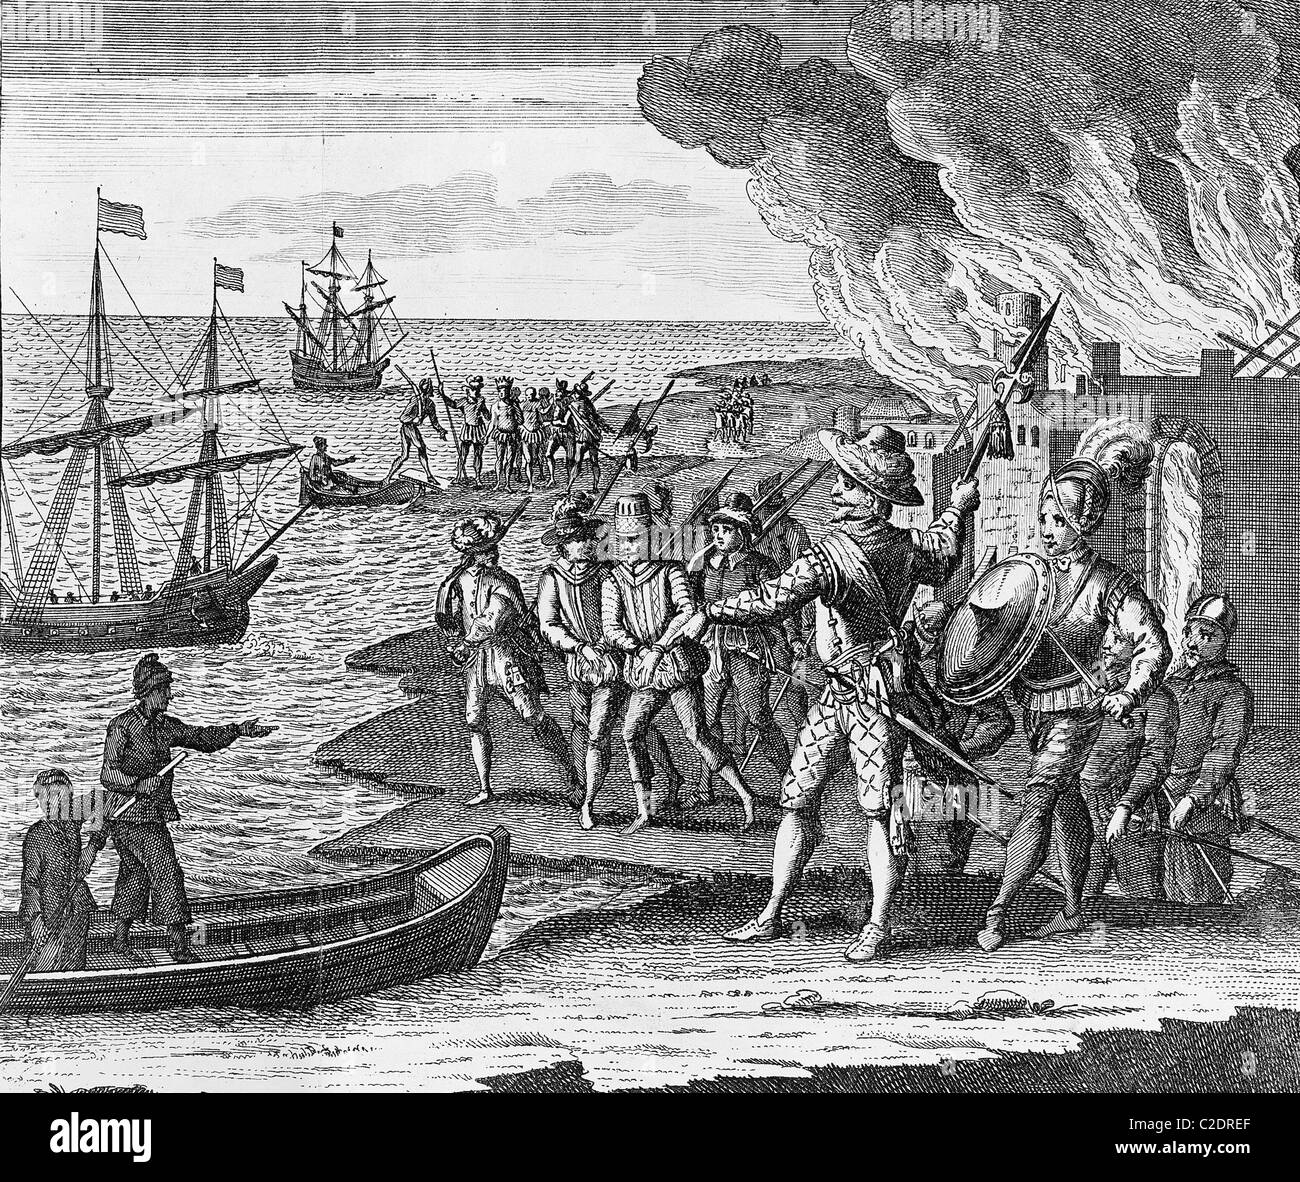 Sir Walter Raleigh's conquest of Trinidad - Stock Image